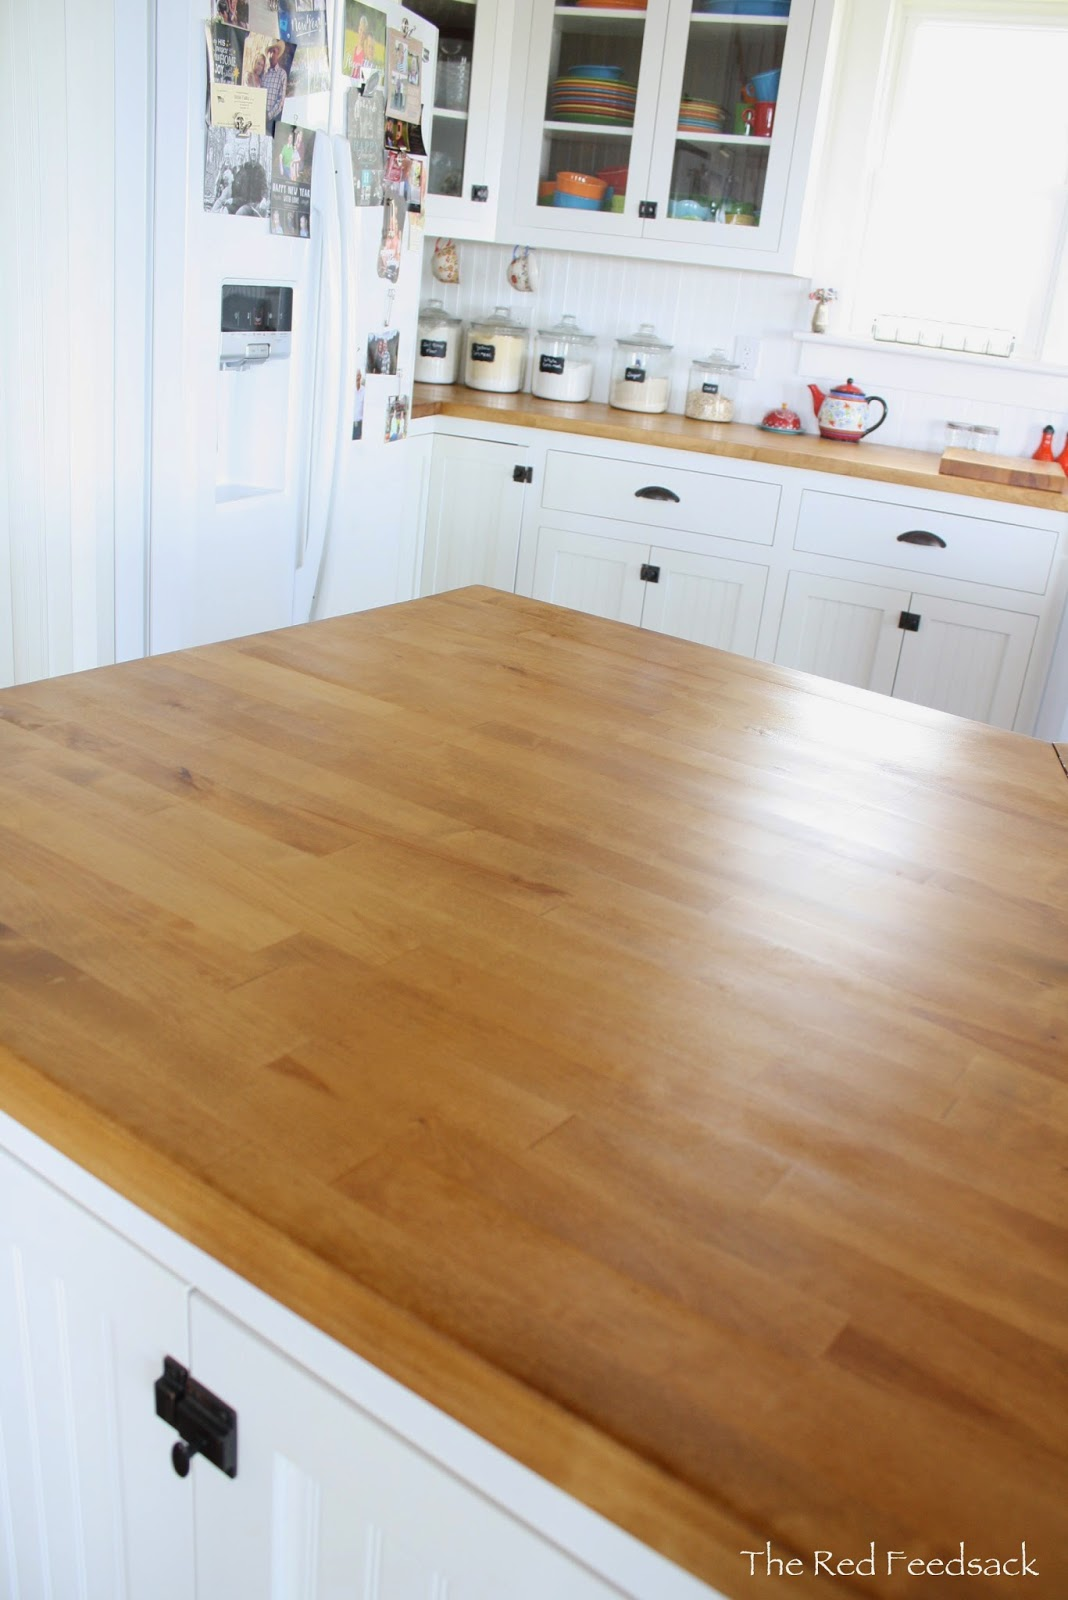 Oil for butcher block - The Next Most Common Question Is If I Would Do Things Differently If I Had It To Do Over Again The Answer Is Absolutely Not I Think The Butcher Block Is